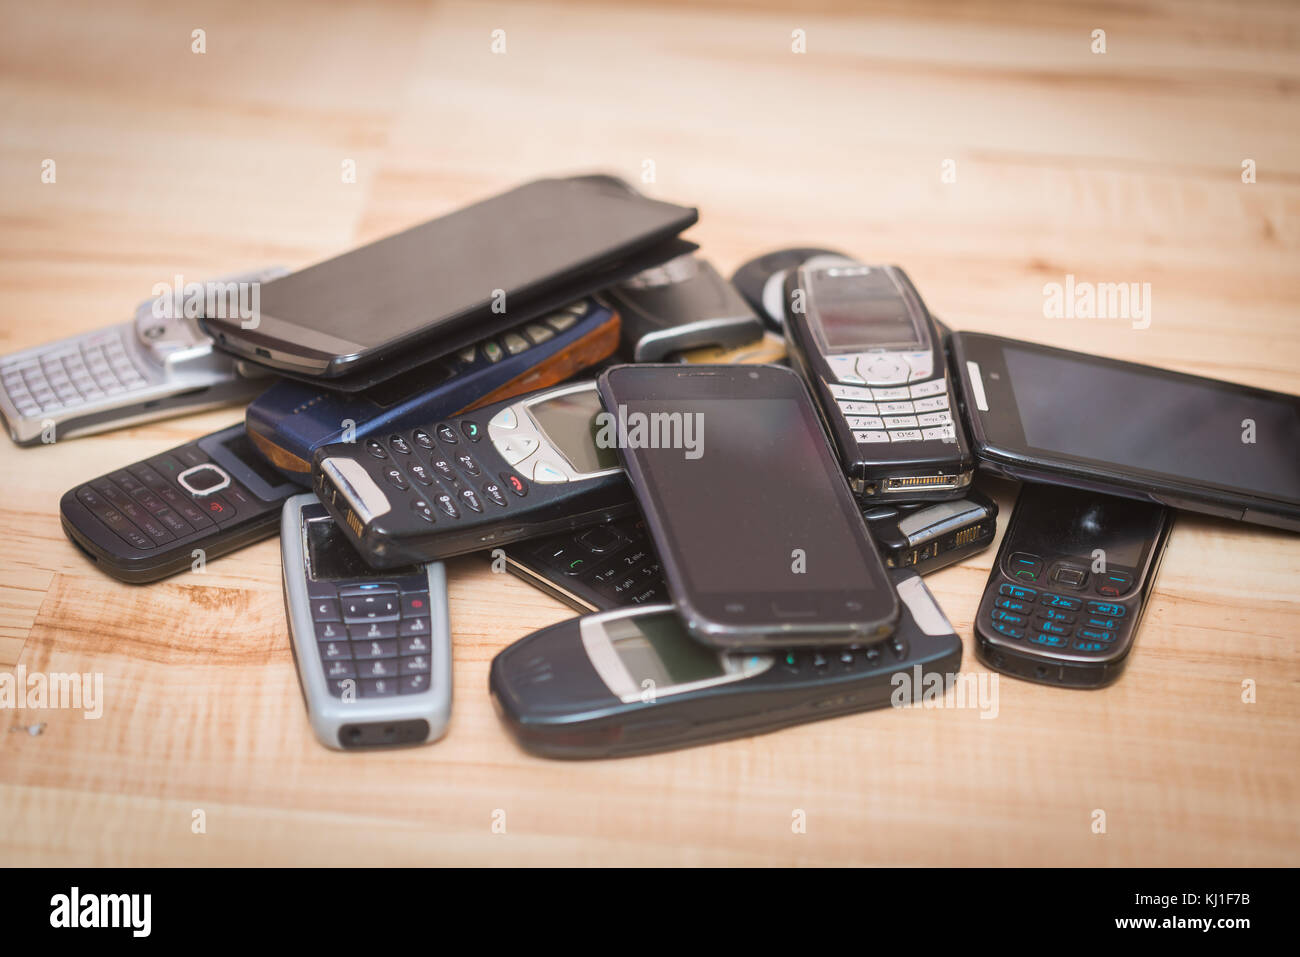 Pile Of Cell Phones : Pile phones stock photos images alamy